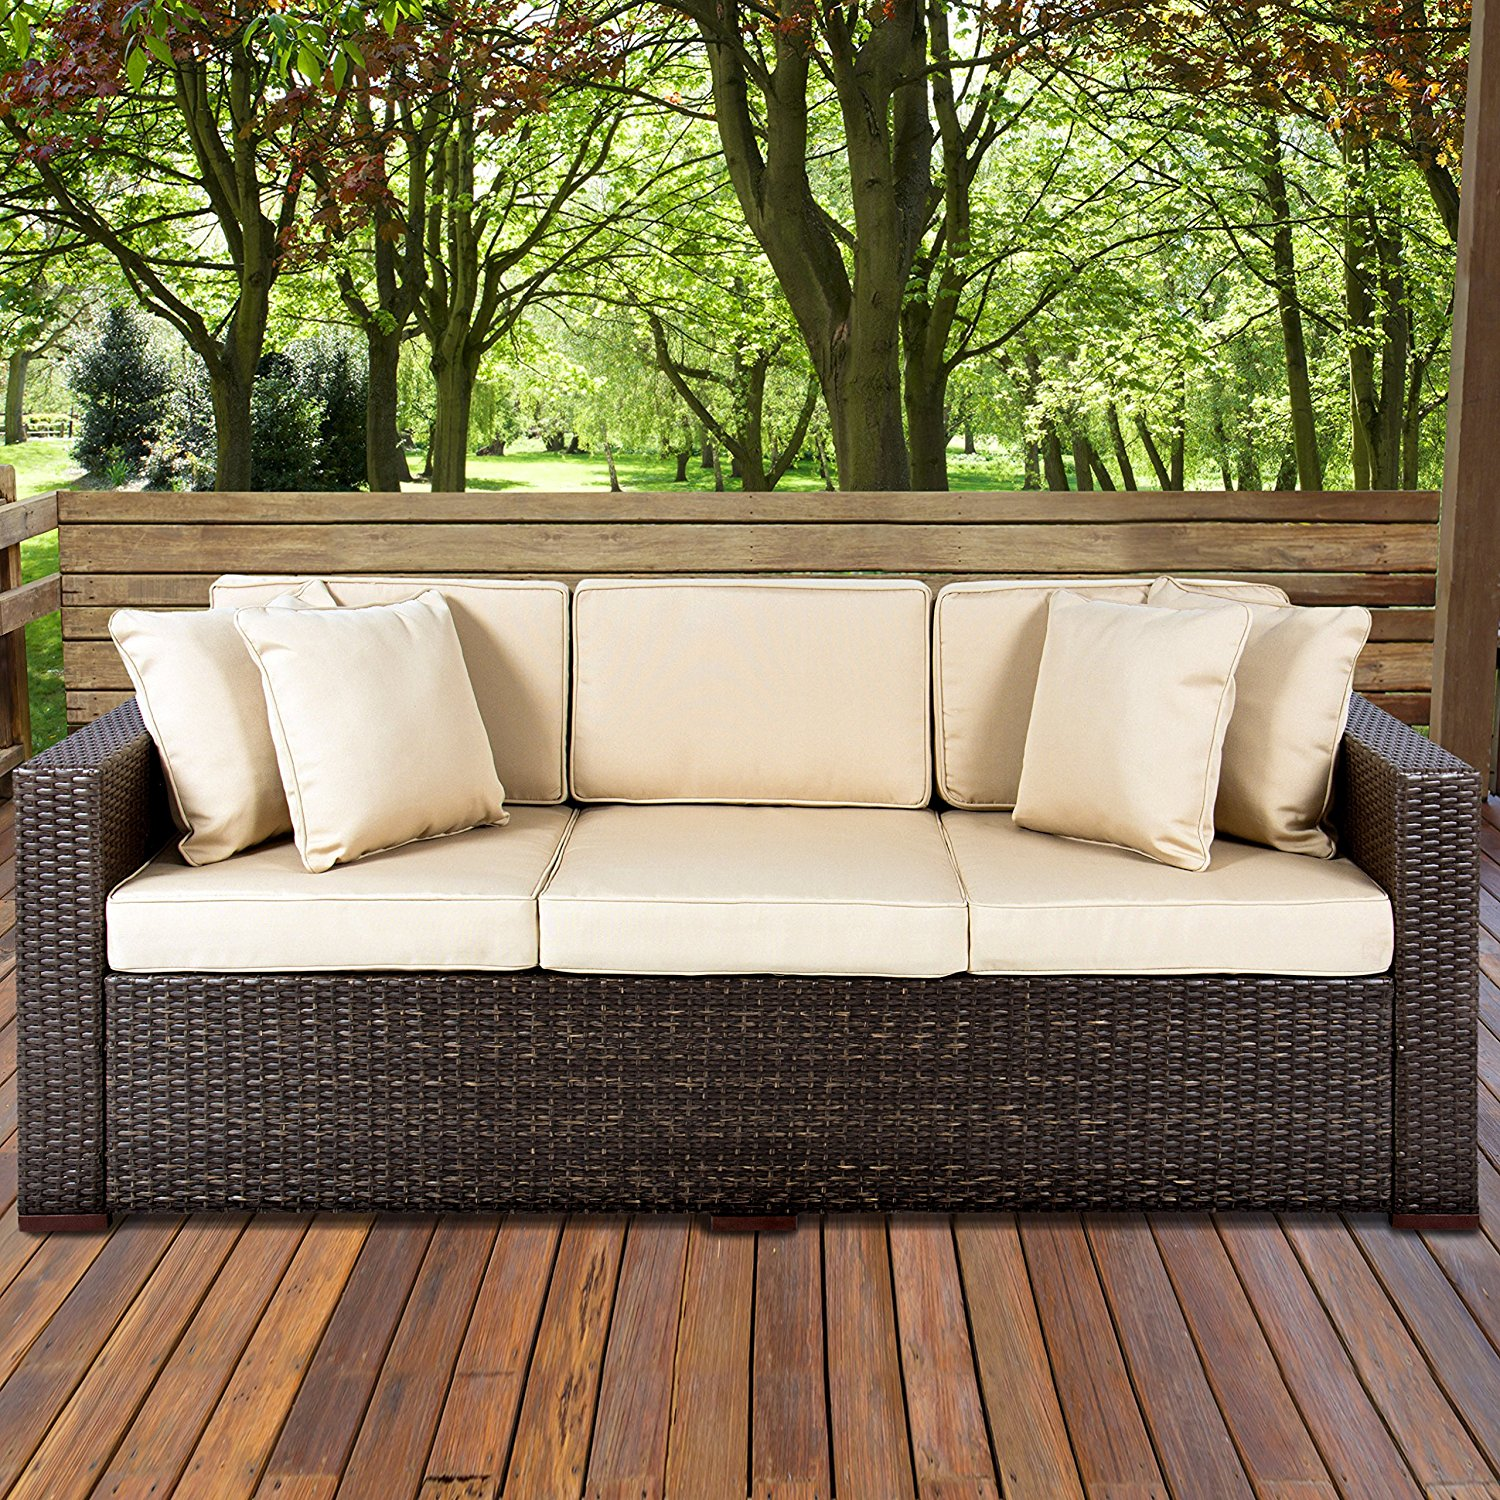 Outdoor Wicker Sofa Couch Patio Furniture